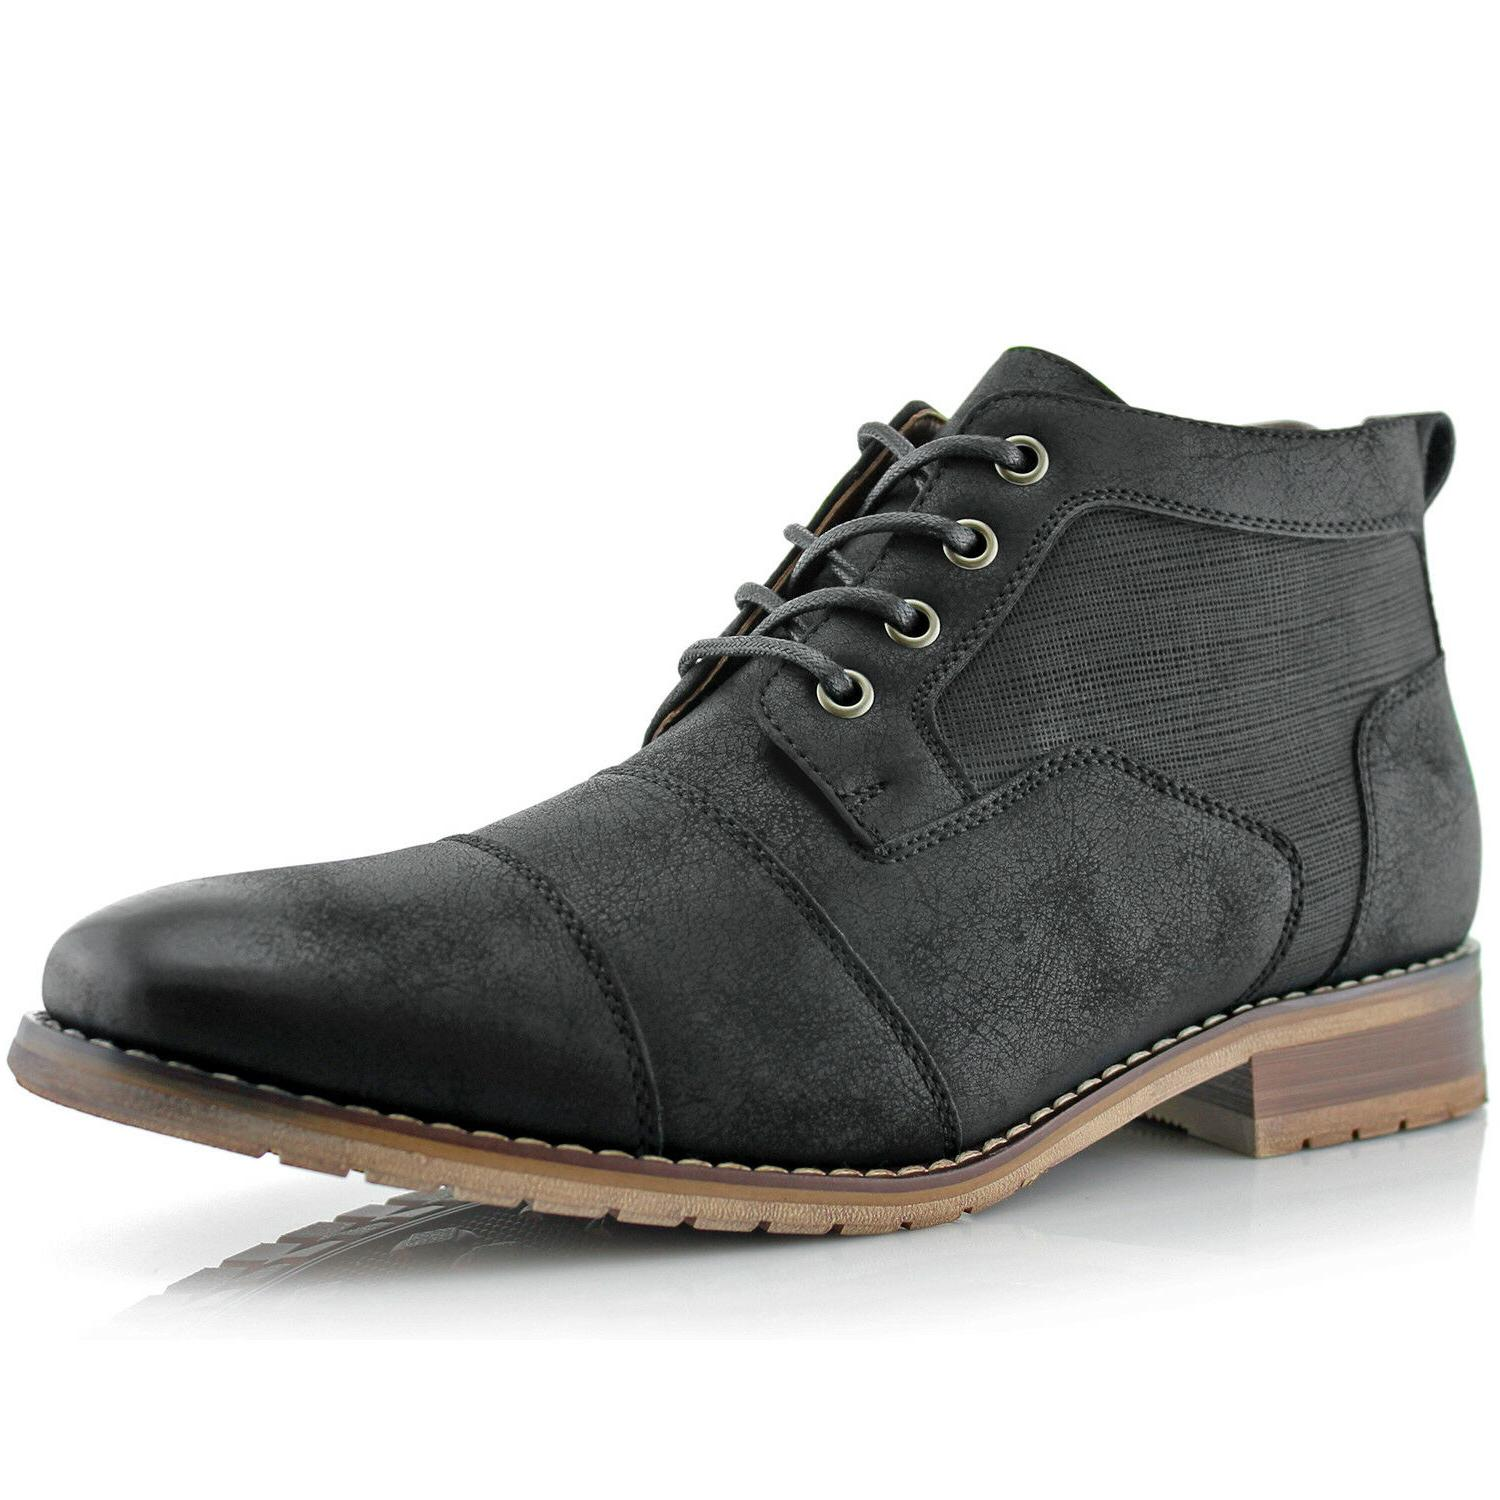 Casual Chukka Leather Zipper Boots